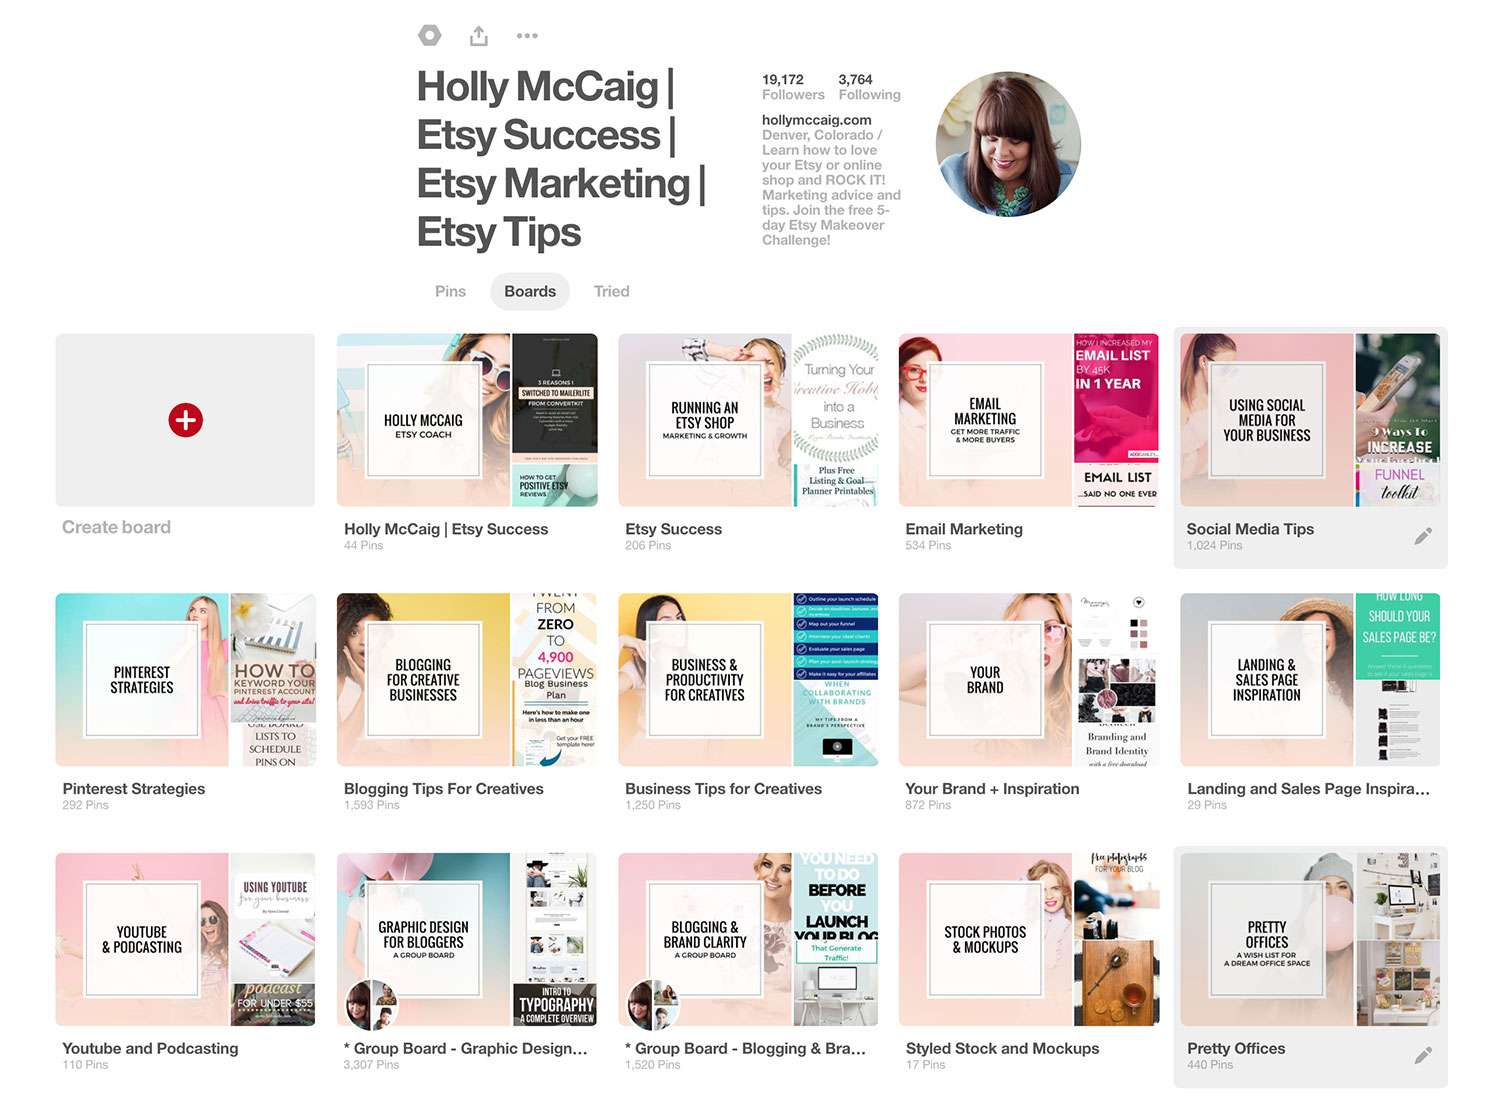 Learning how to attract more buyers to your Etsy shop doesn't have to be difficult. This proven method of using Pinterest will guide you! Be sure to visit hollymccaig.com for more tricks to market your Etsy shop.